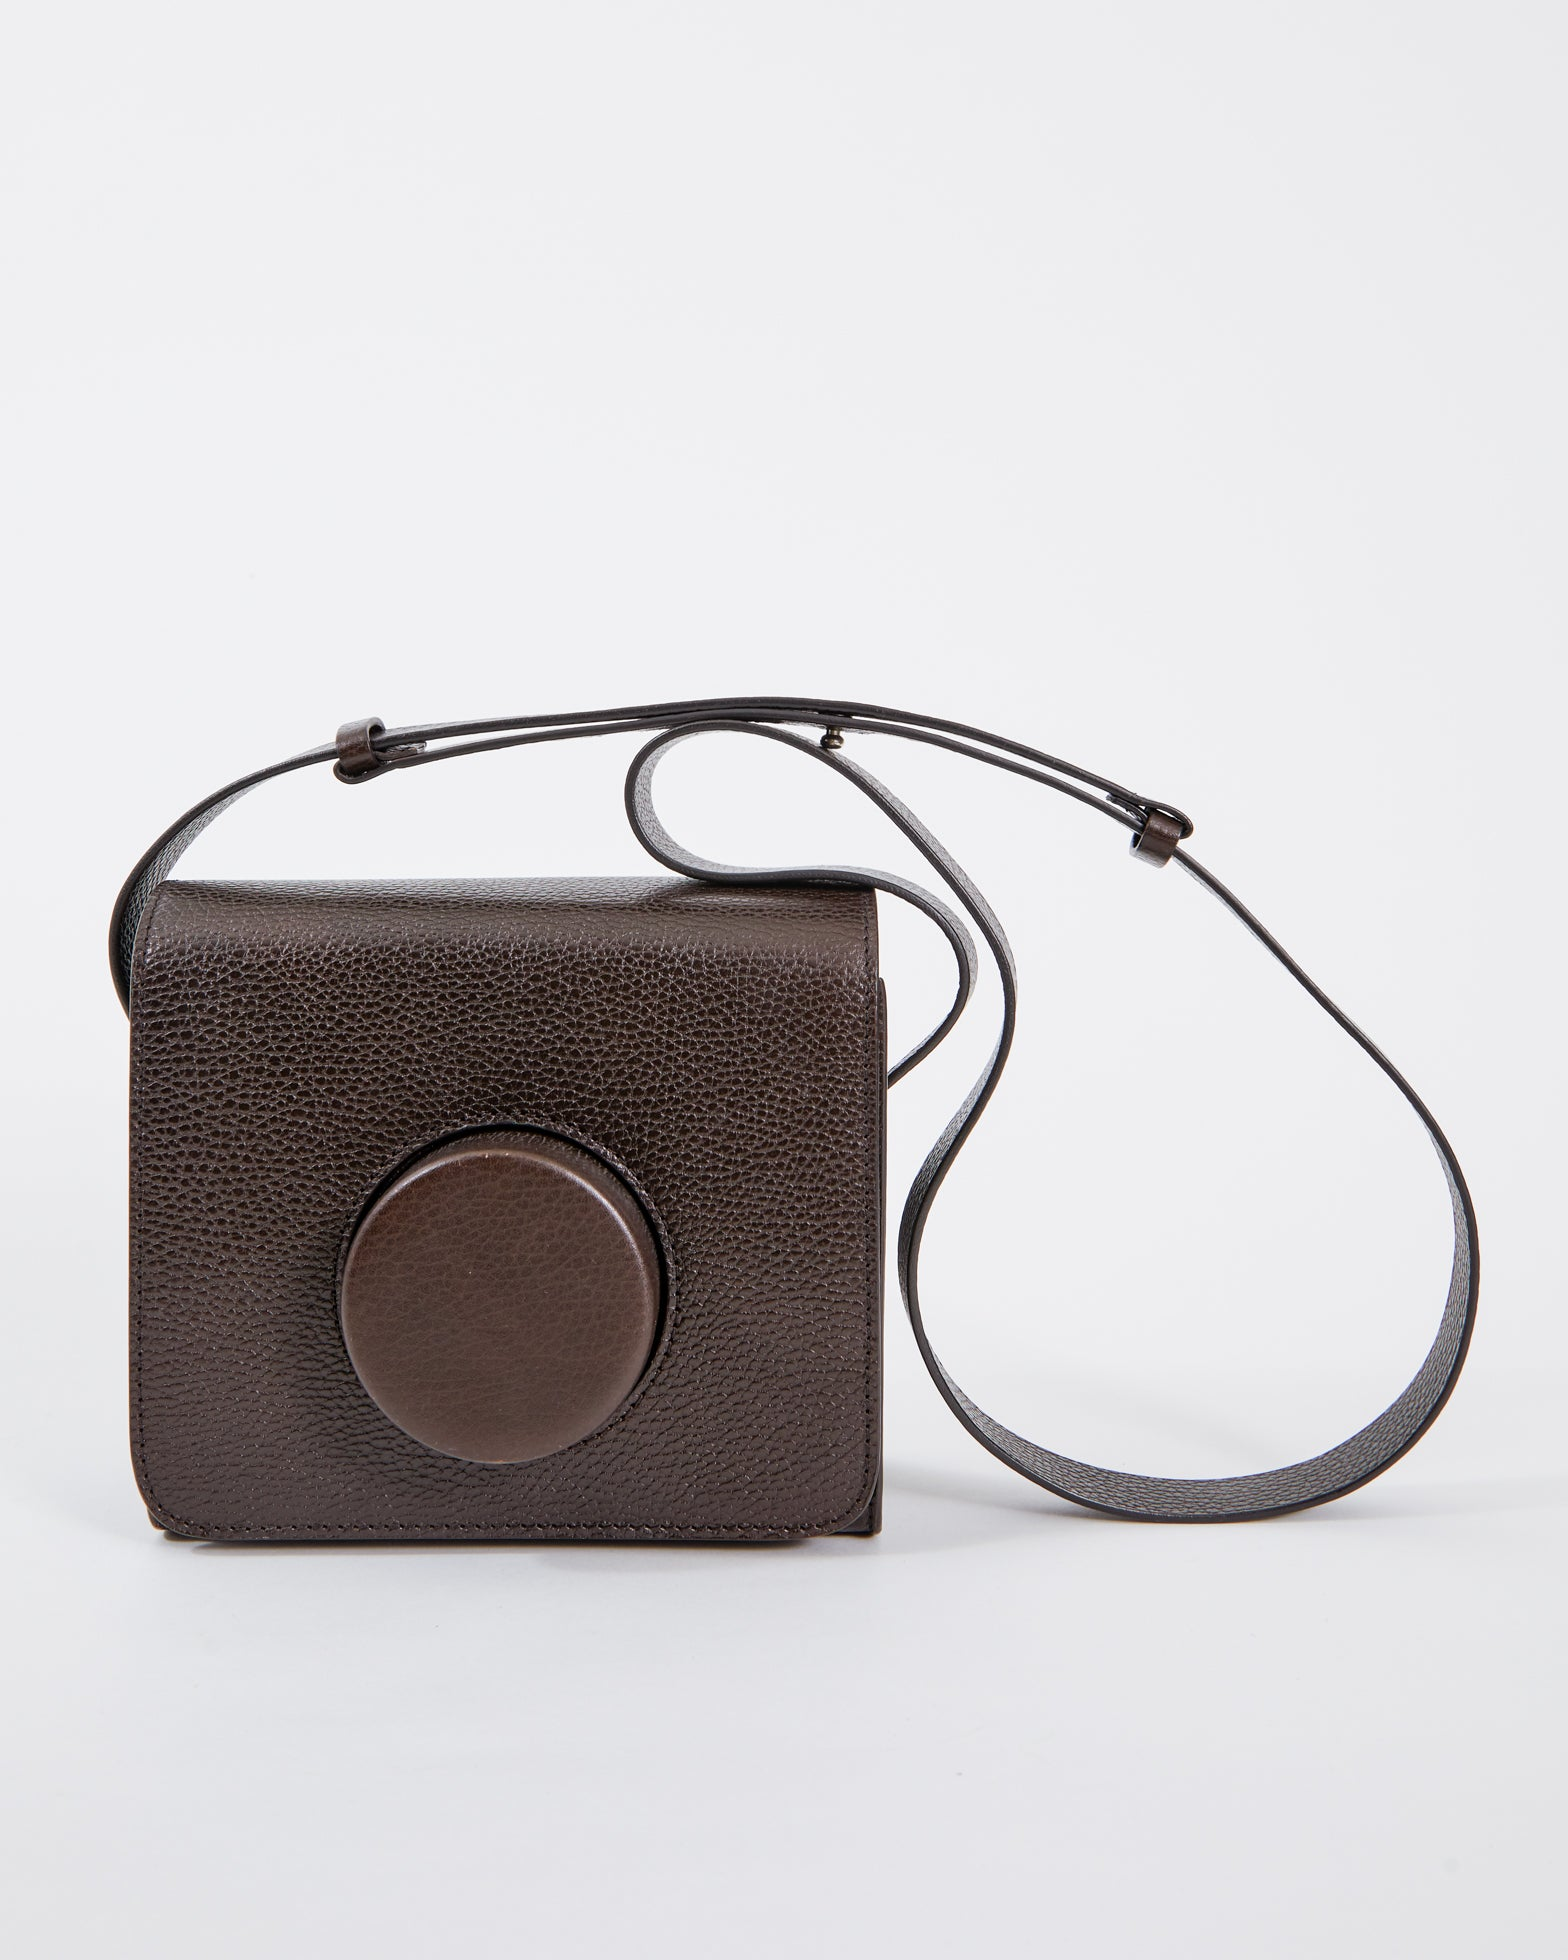 Mohawk General Store | Lemaire | Camera Bag in Chocolate Brown